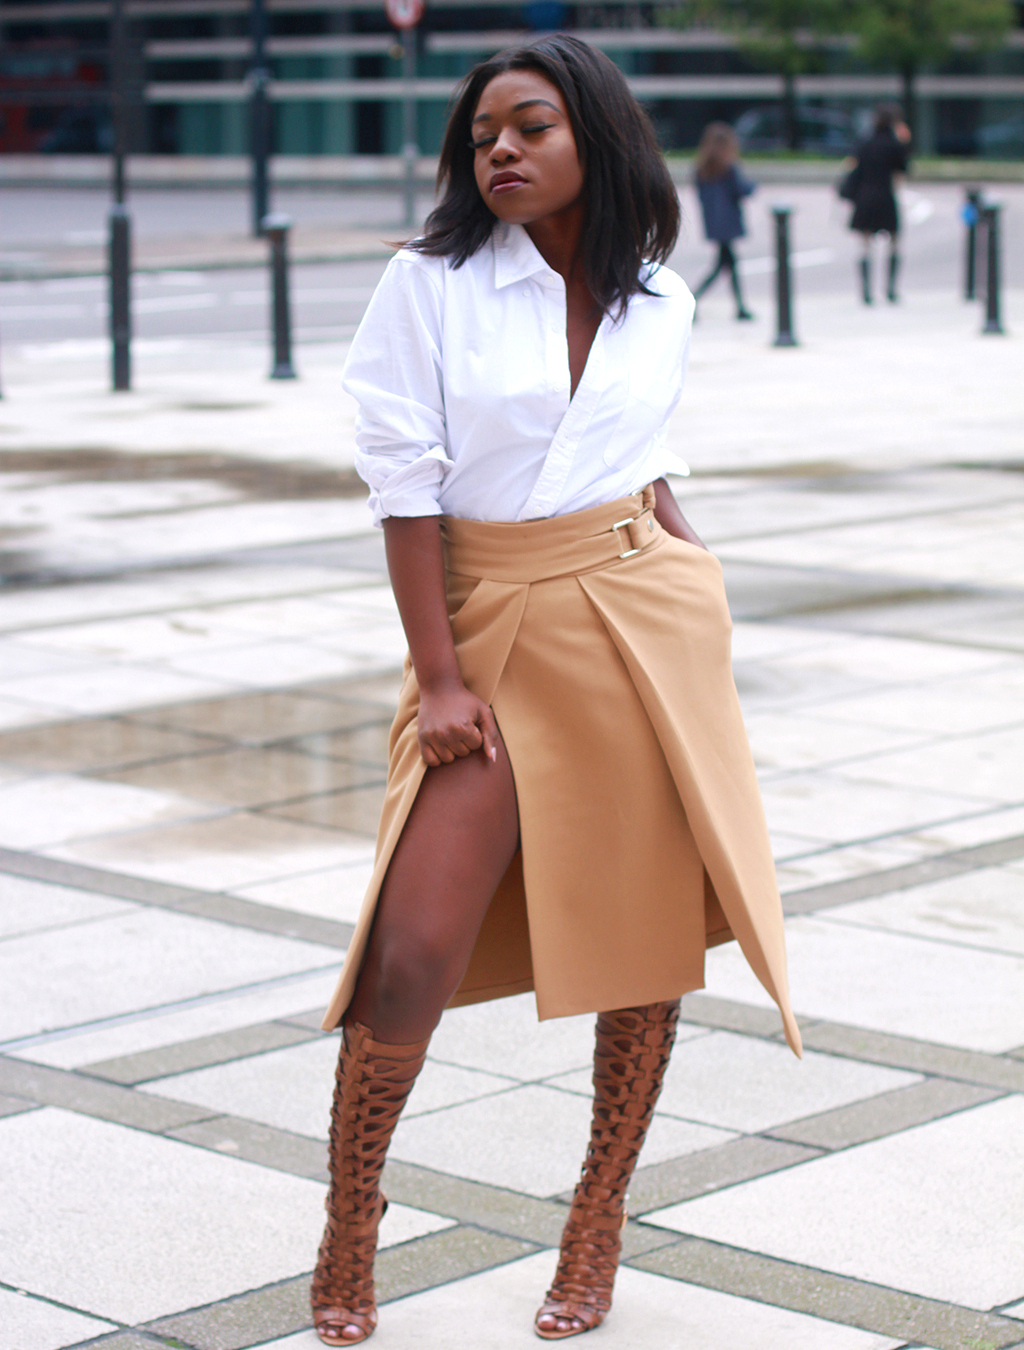 skirt and gladiators